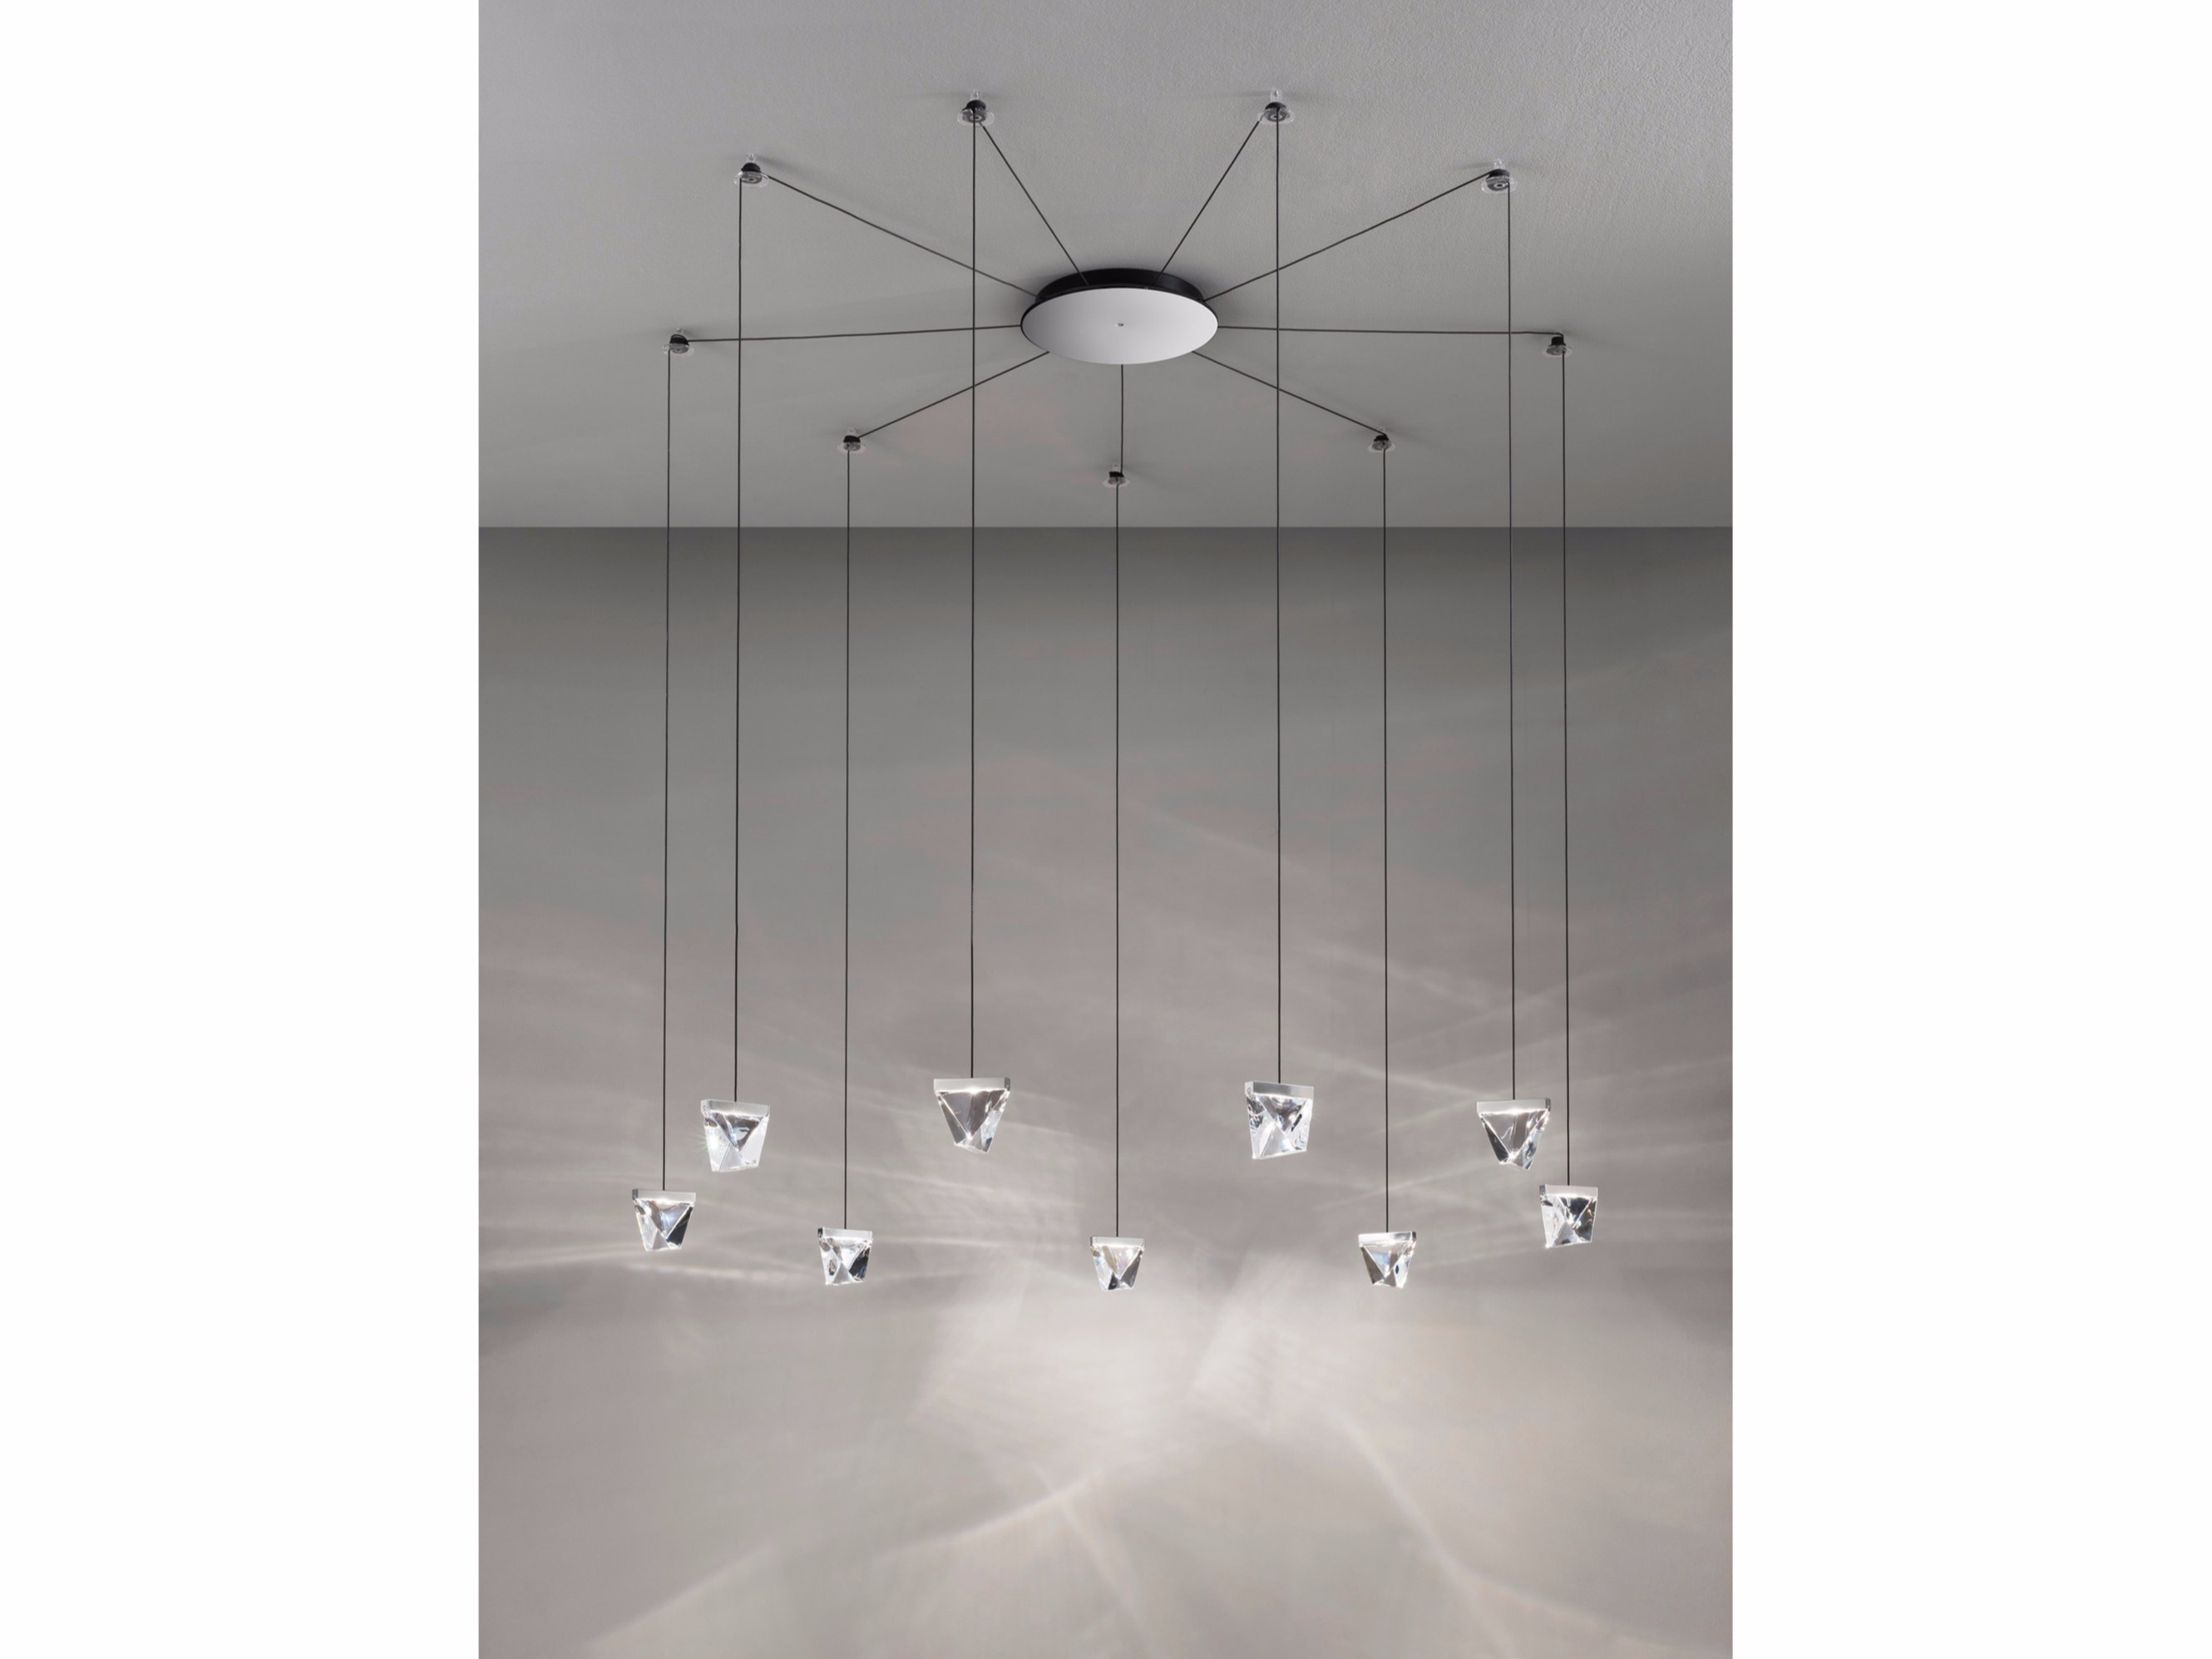 Direct light crystal pendant l& MULTISPOT BELUGA | Pendant l& Multispot Collection By Fabbian design Marc Sadler  sc 1 st  Archiproducts & Direct light crystal pendant lamp MULTISPOT BELUGA | Pendant lamp ... azcodes.com